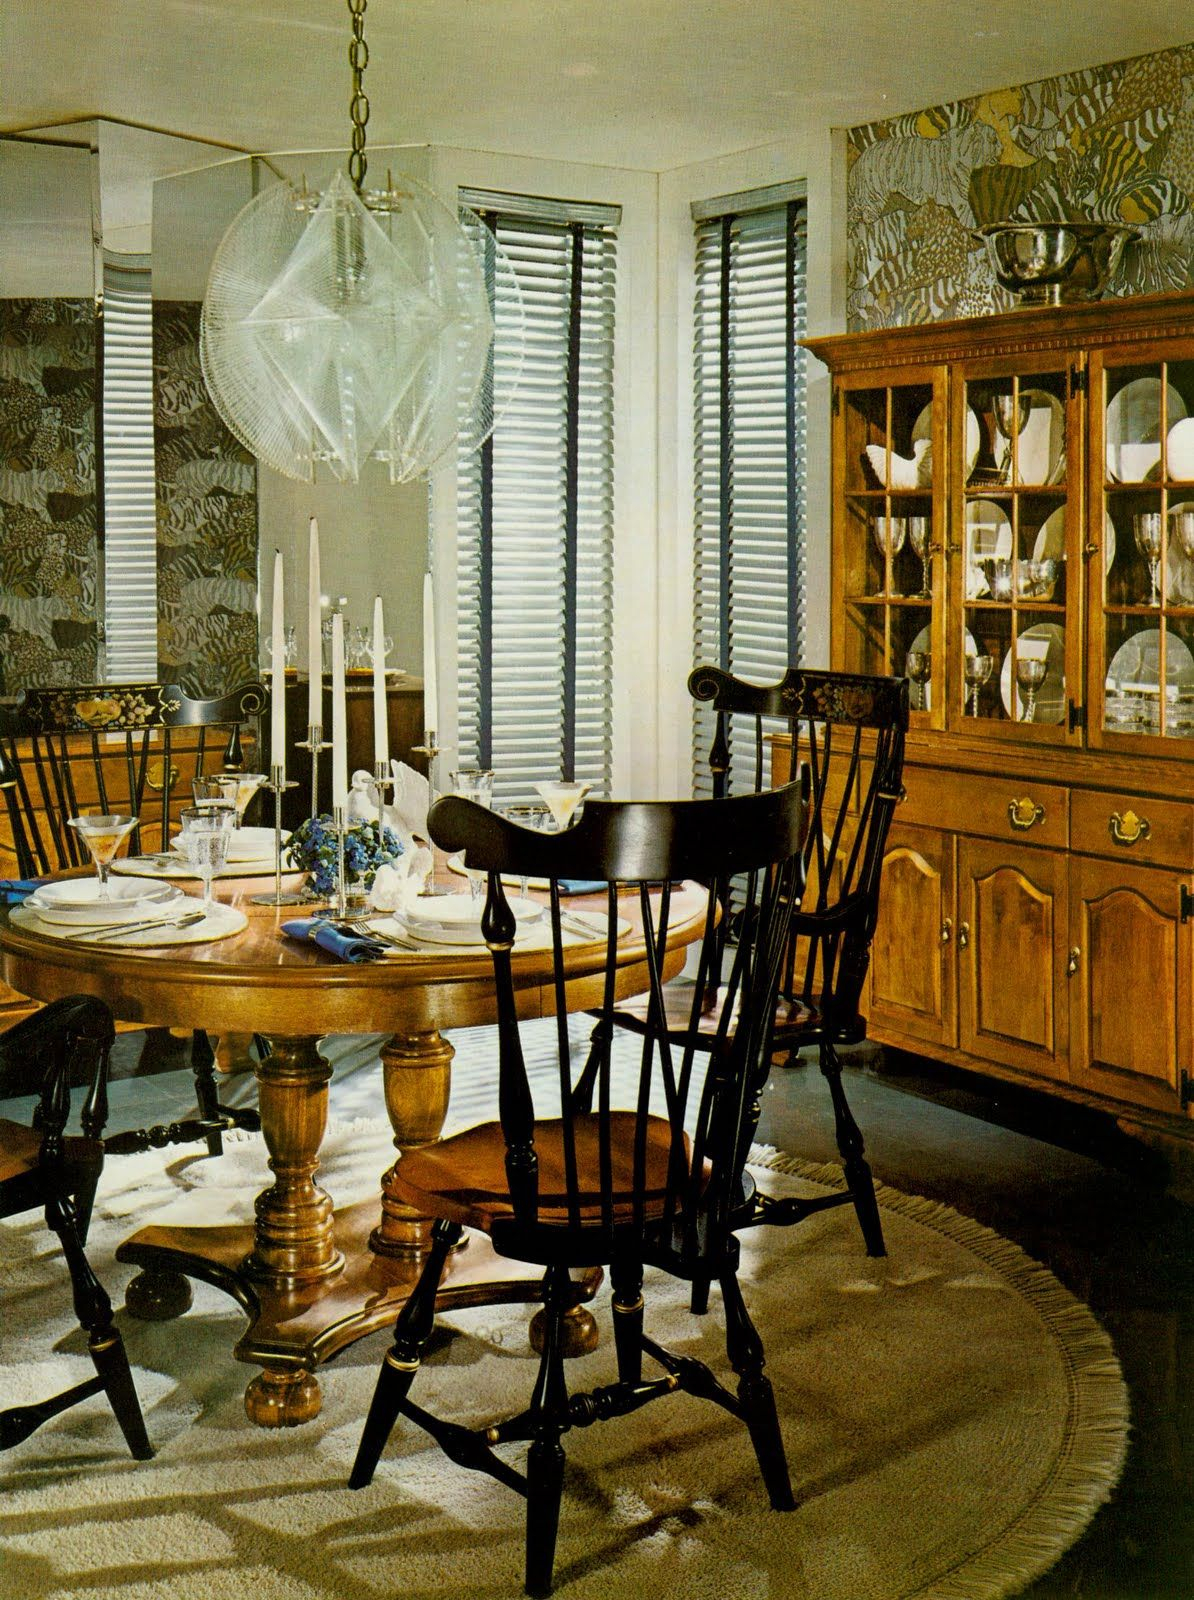 Vintage Ethan Allen Catalog Dining Room A Mix Of Colonial throughout 12 Clever Ways How to Make Ethan Allen Living Room Sets